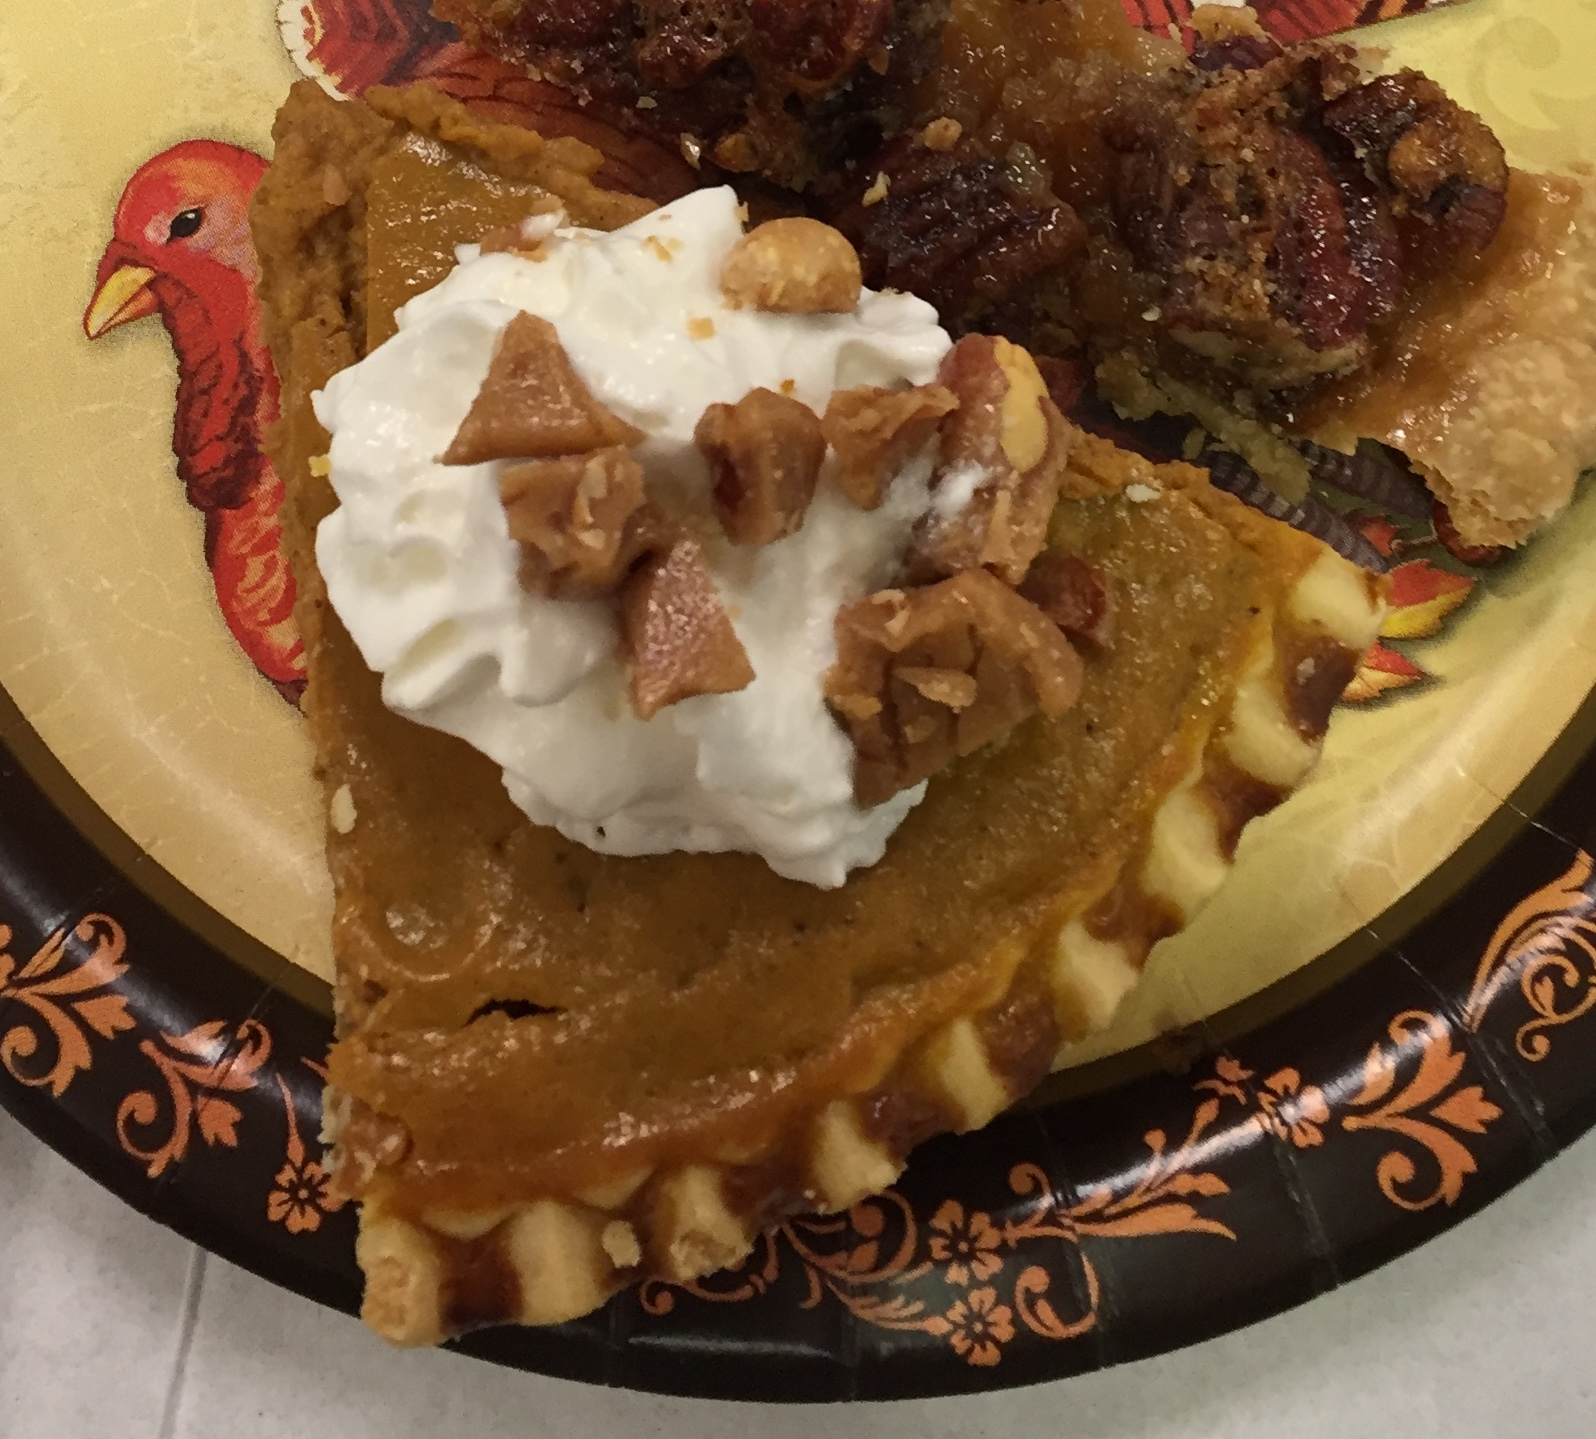 2016-11-24p Ohio Visit - Thanksgiving Dinner - Dessert! copy